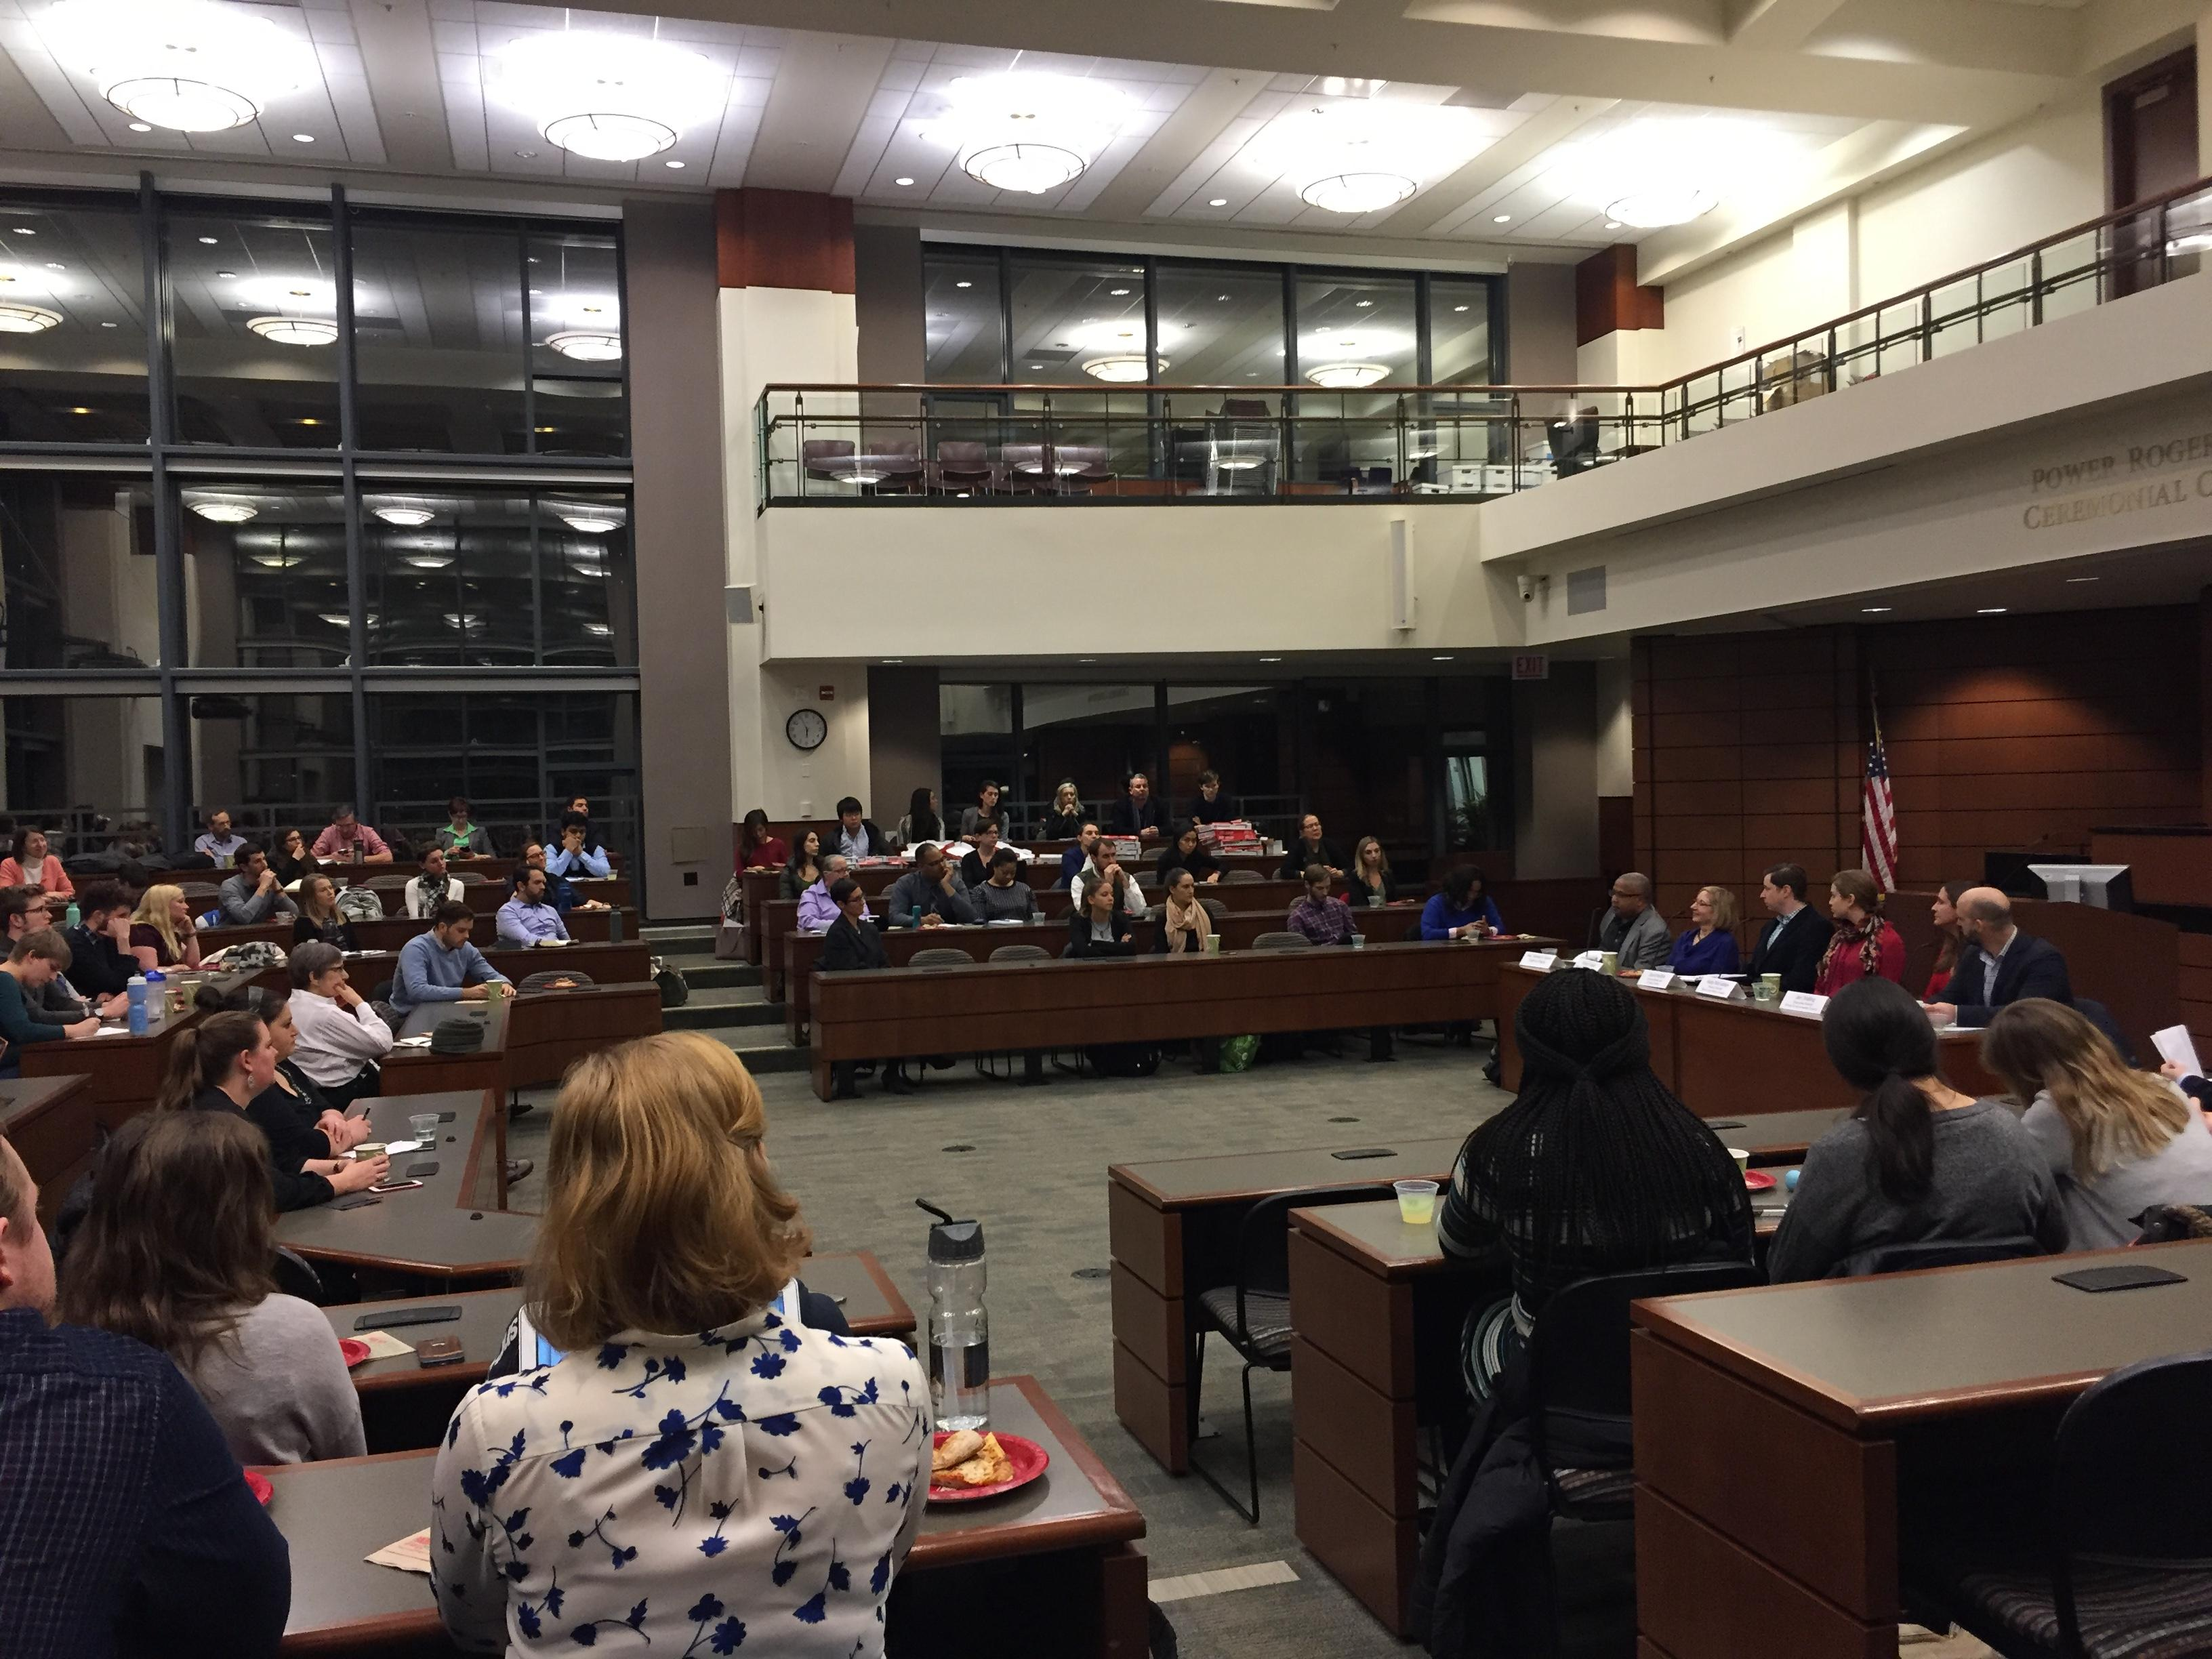 About 100 people gathered Jan. 19 at Loyola University's School of Law to discuss environmental issues for 2017 and beyond. (Alex Ruppenthal / Chicago Tonight)